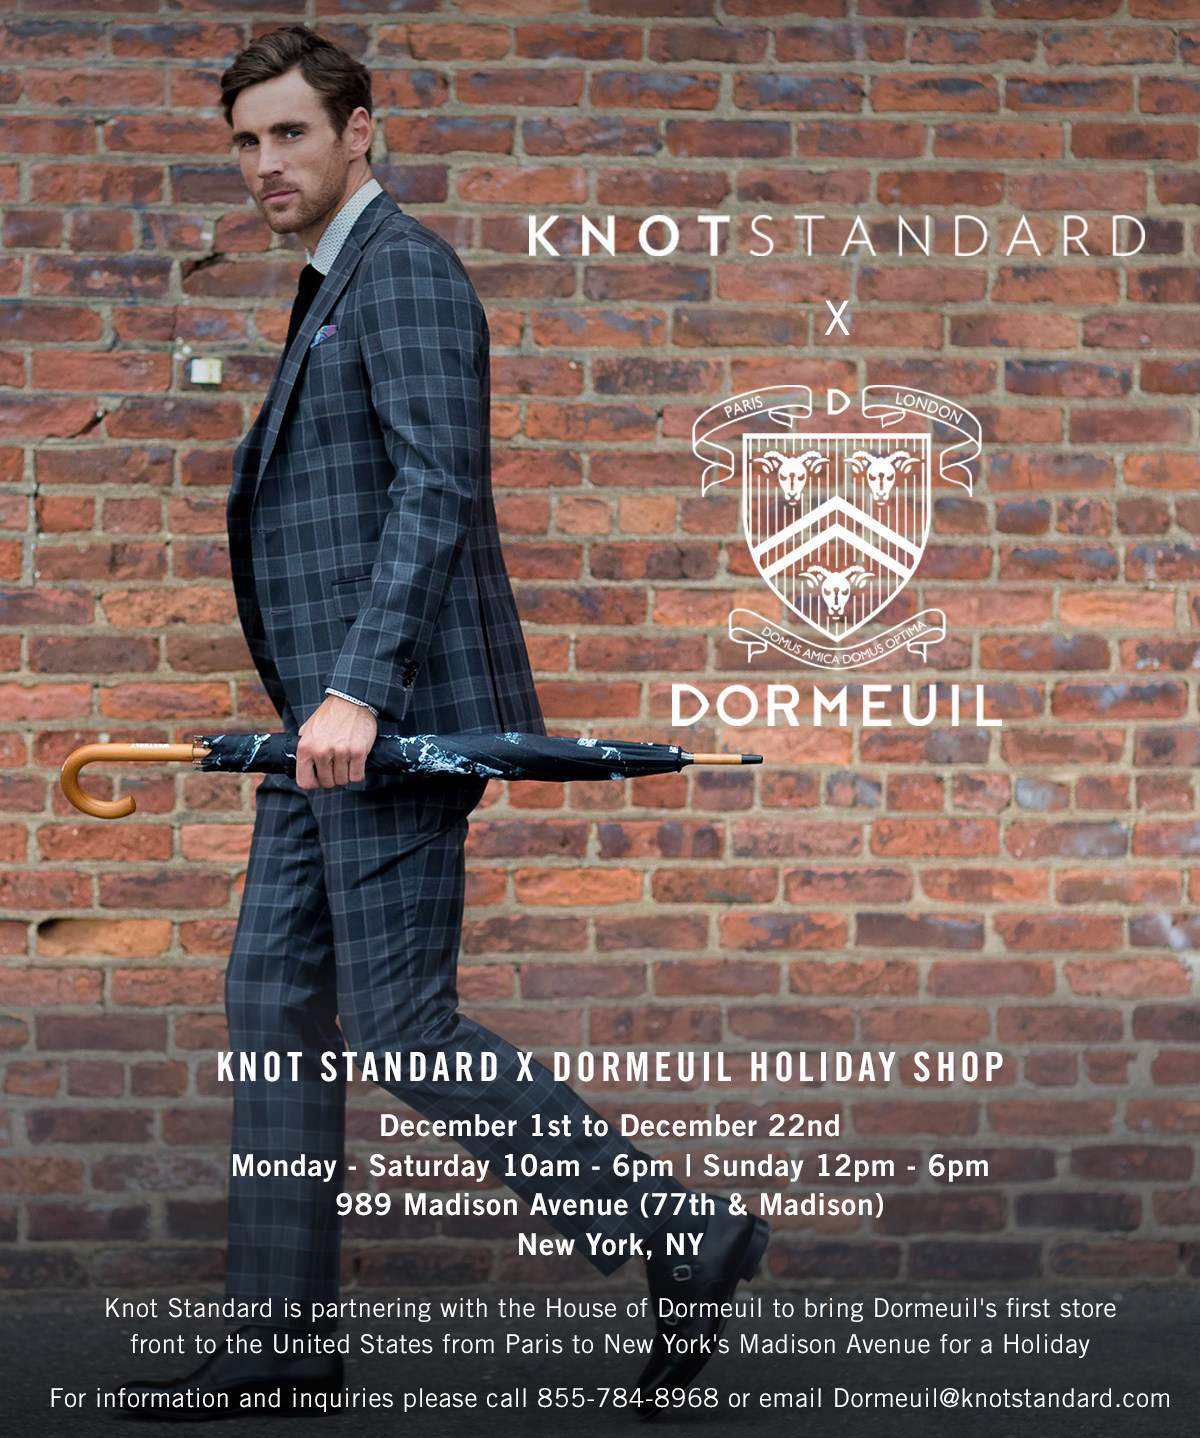 Knot Standard, a custom men's wear company, is collaborating with French luxury fabric mill Dormeuil, as the two companies partner for a December holiday shop on Manhattan's Upper East Side.